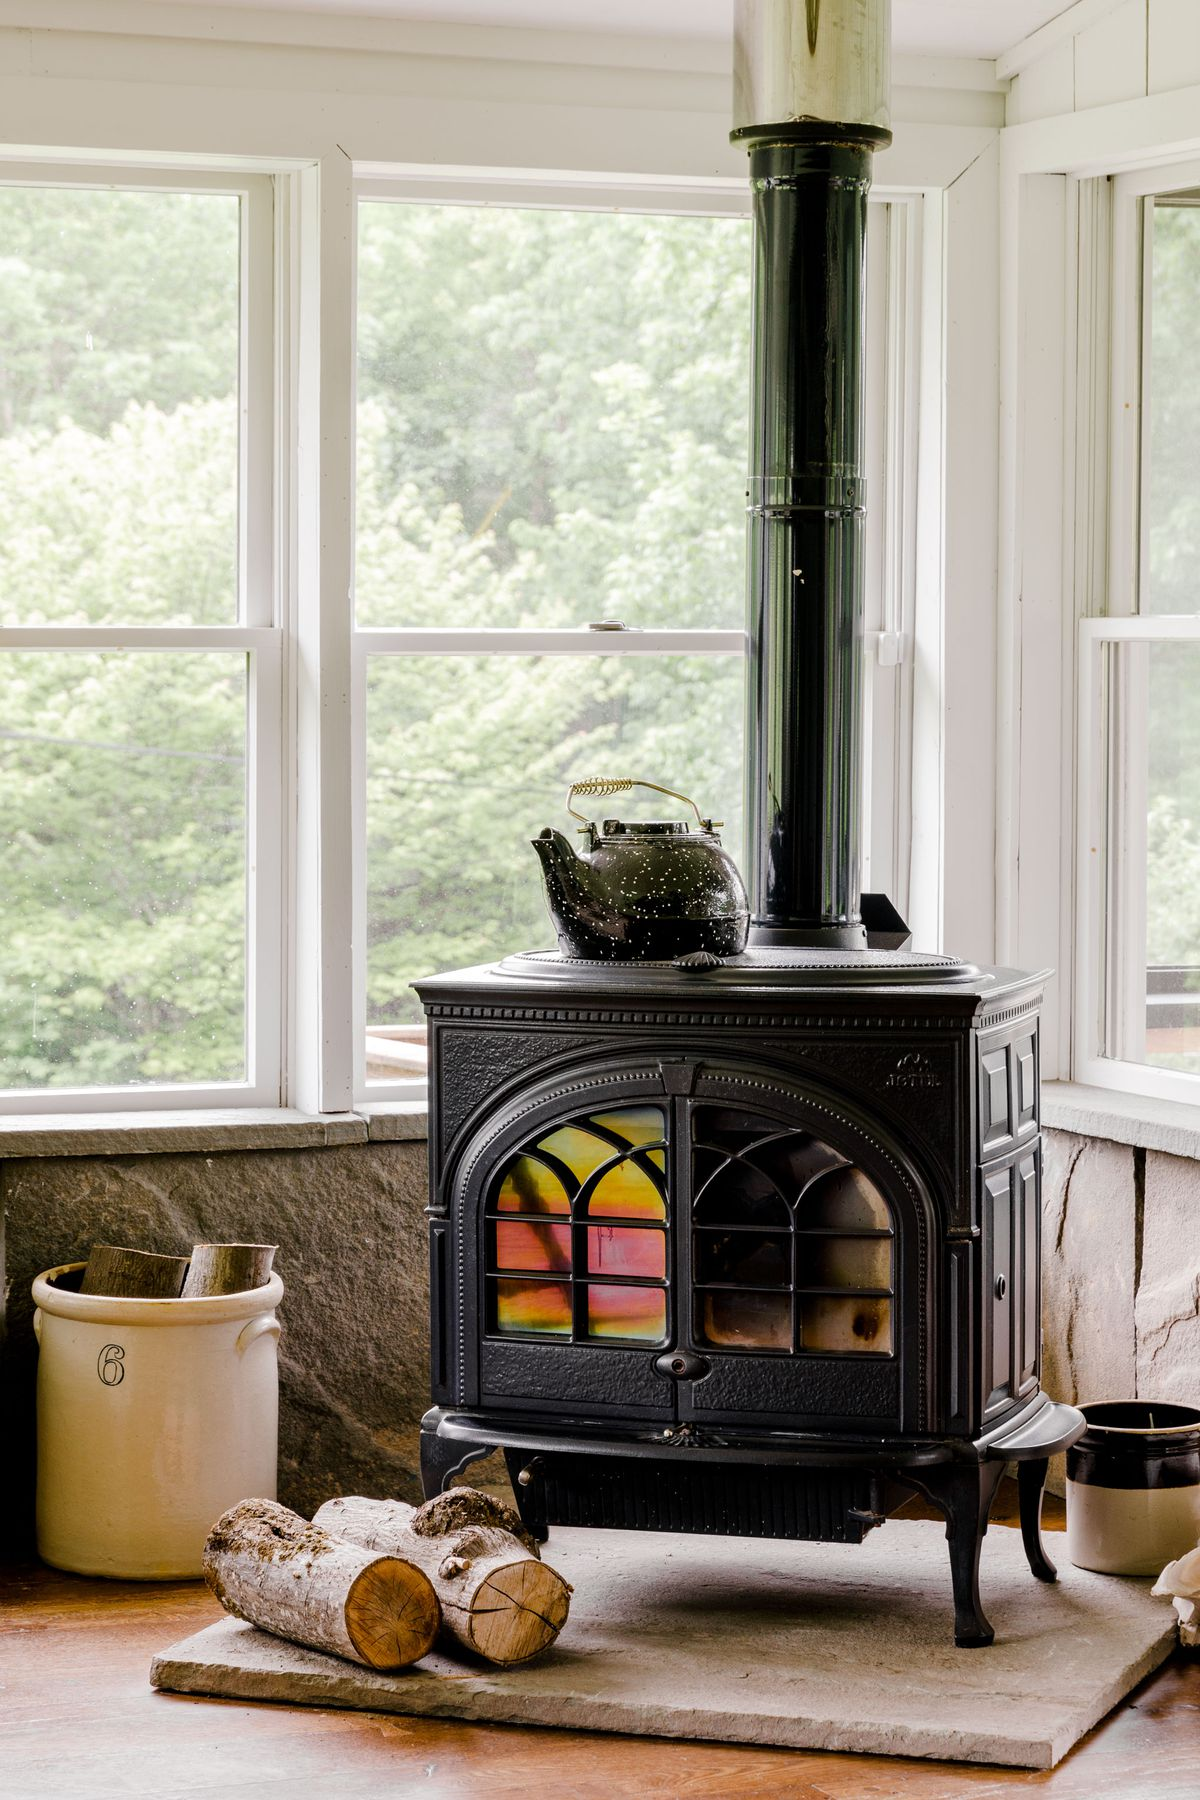 Windows overlooking trees surround a black woodstove with tree logs on the floor